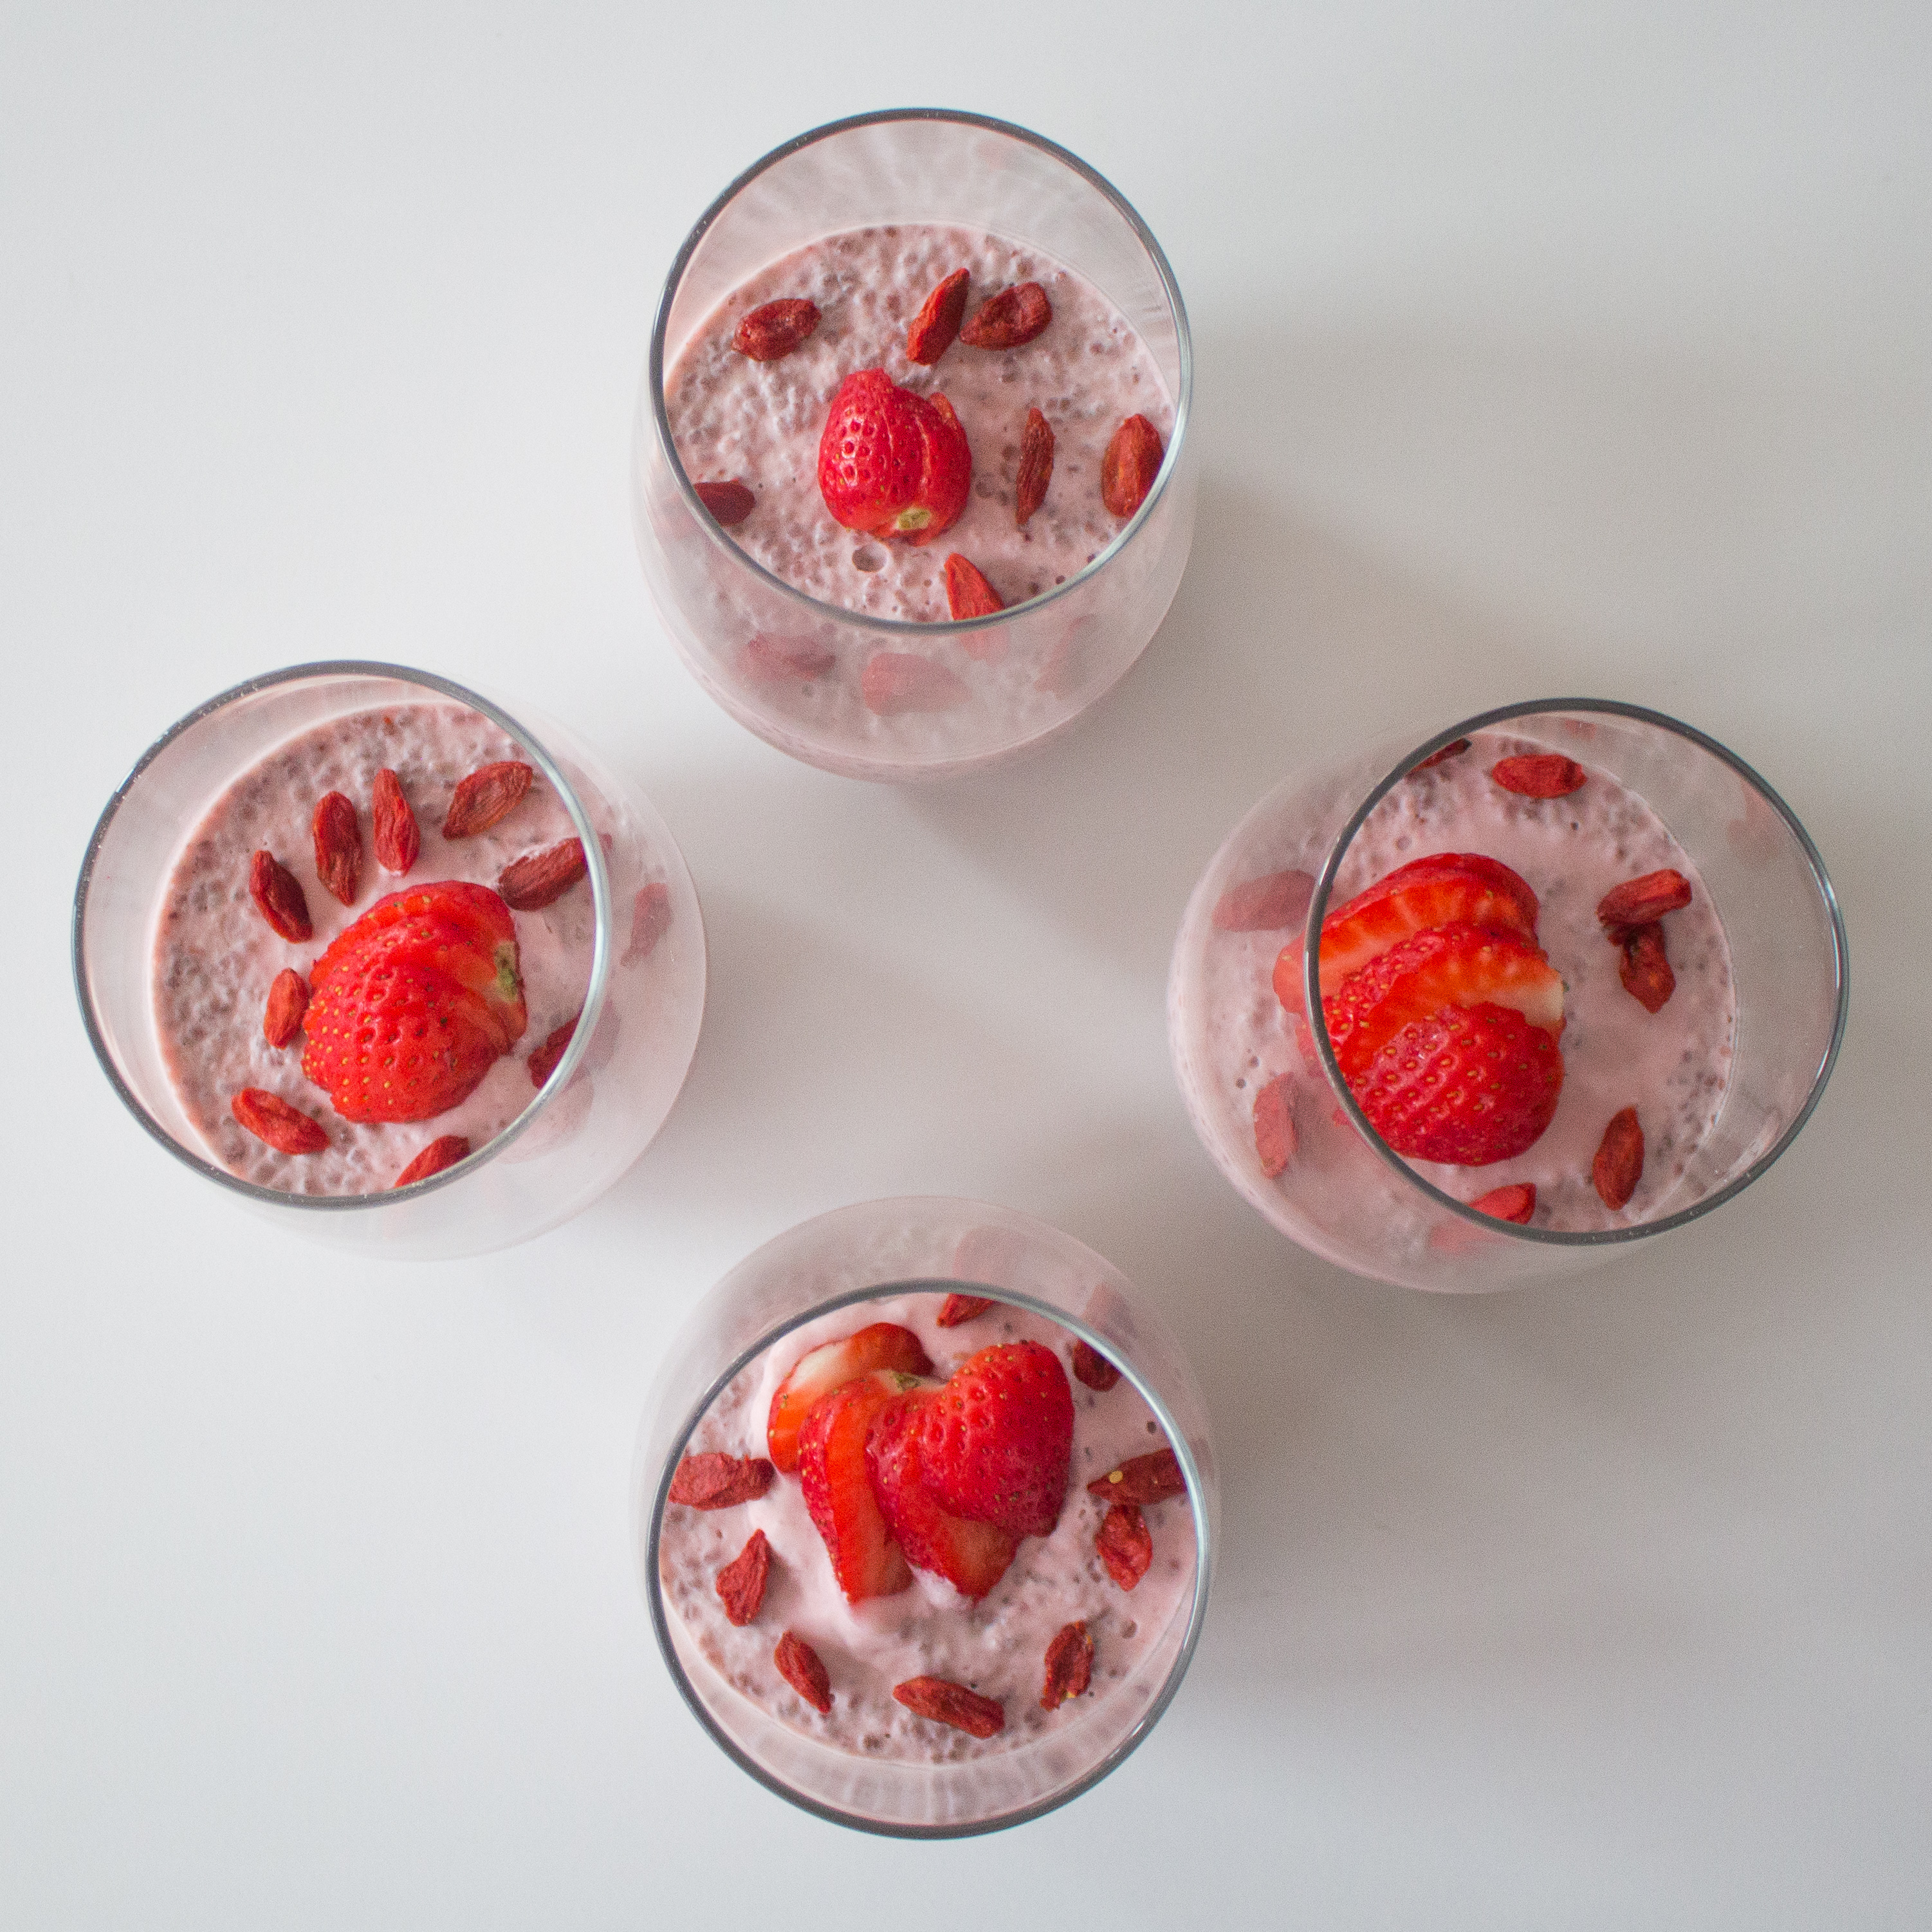 Berry chia seed pudding is the perfect healthy dessert, breakfast or snack!